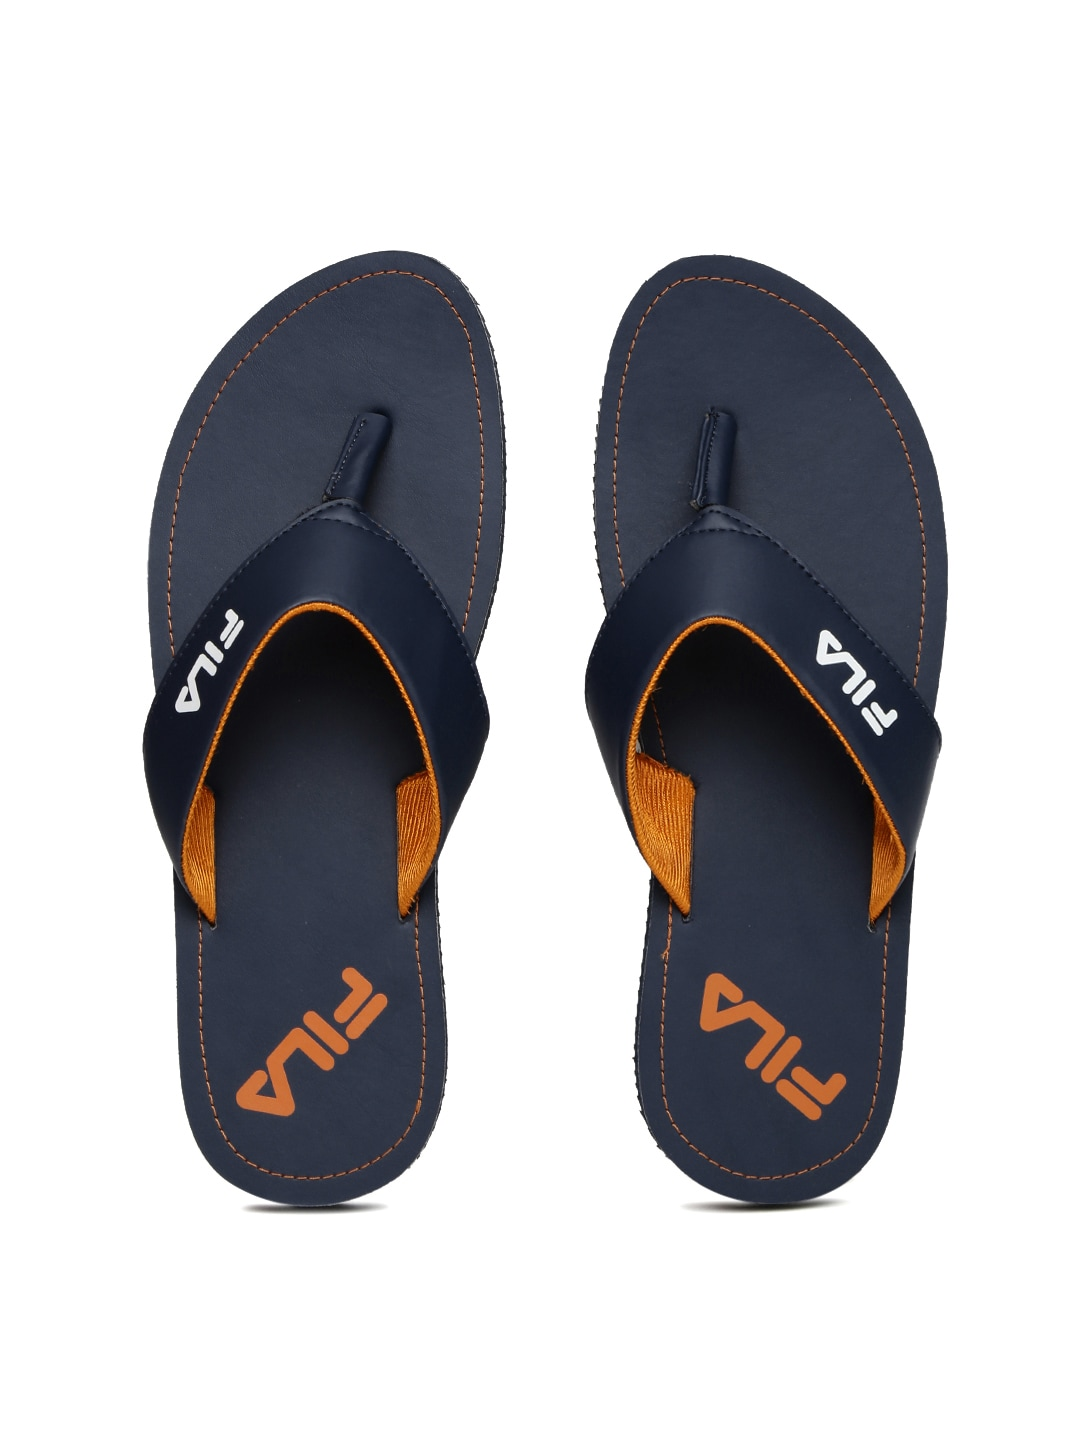 FILA Men Navy Top Flip-Flops image